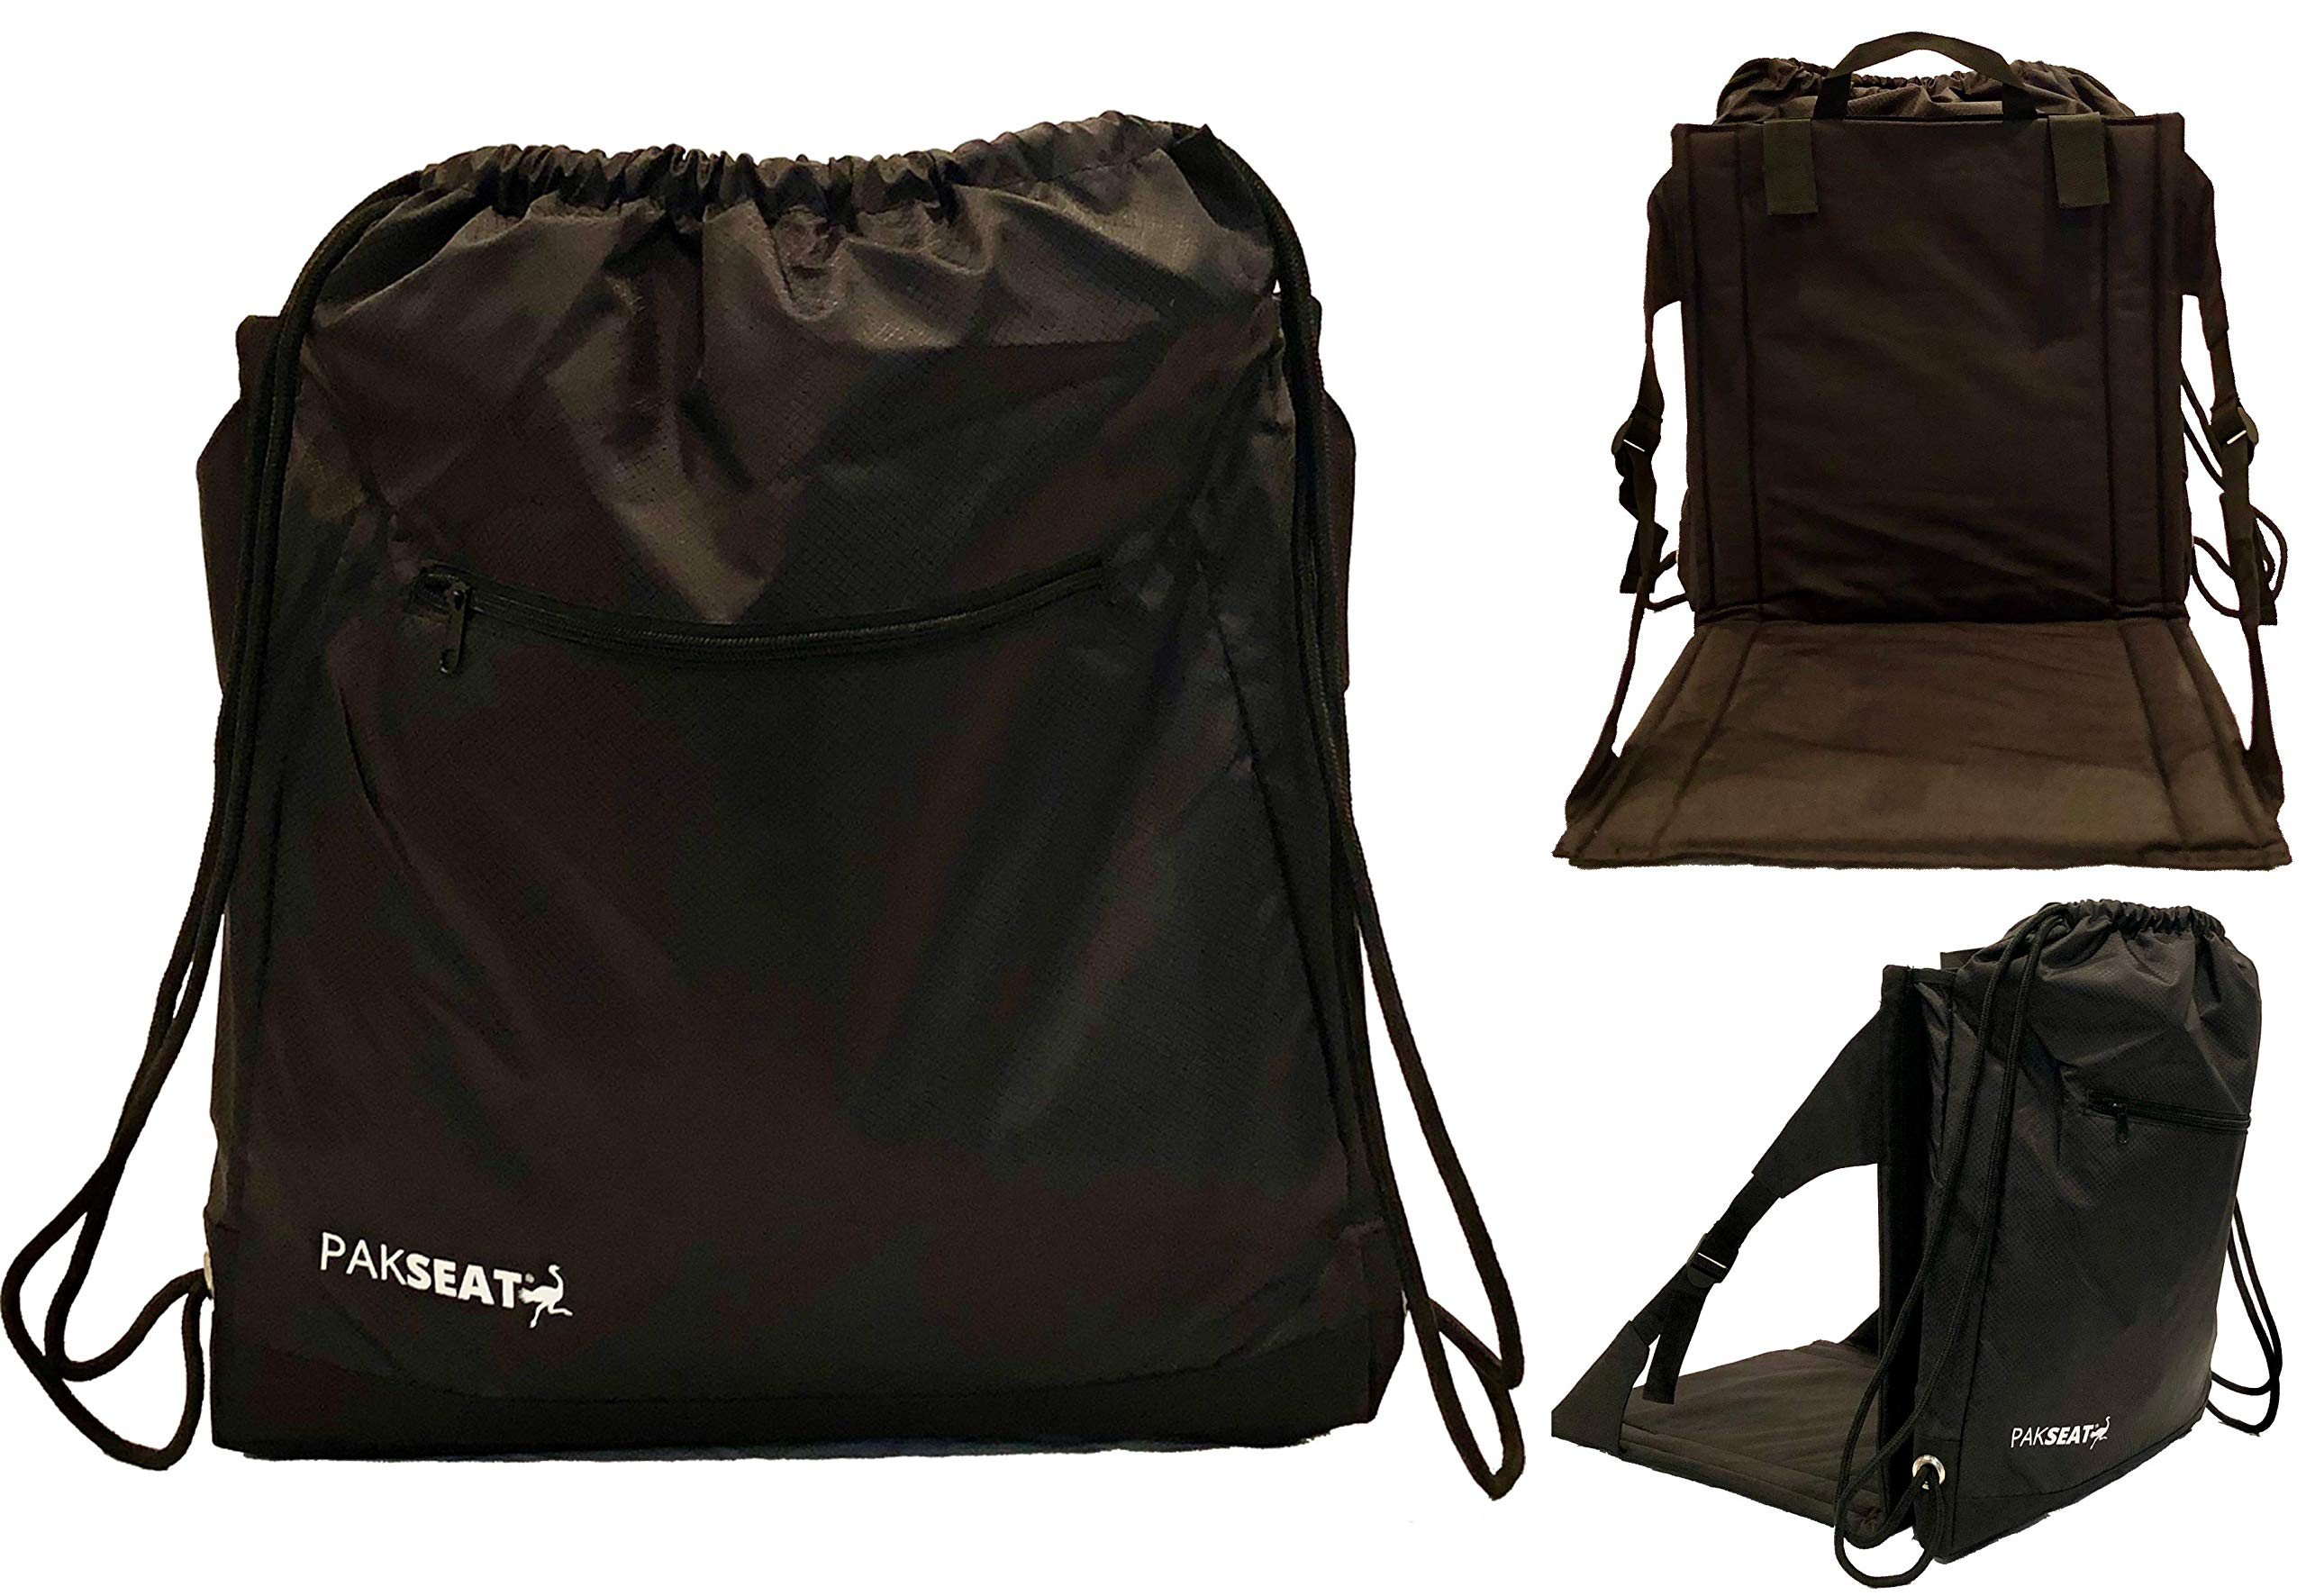 Ostrich PakSeat 2N1 Seat and Backpack Sackpack & Stadium Seat, Padded Seat, Adjustable Back Support, Water Bottle Sleeves, Large Storage Compartments, Athletic Bag, String Bag